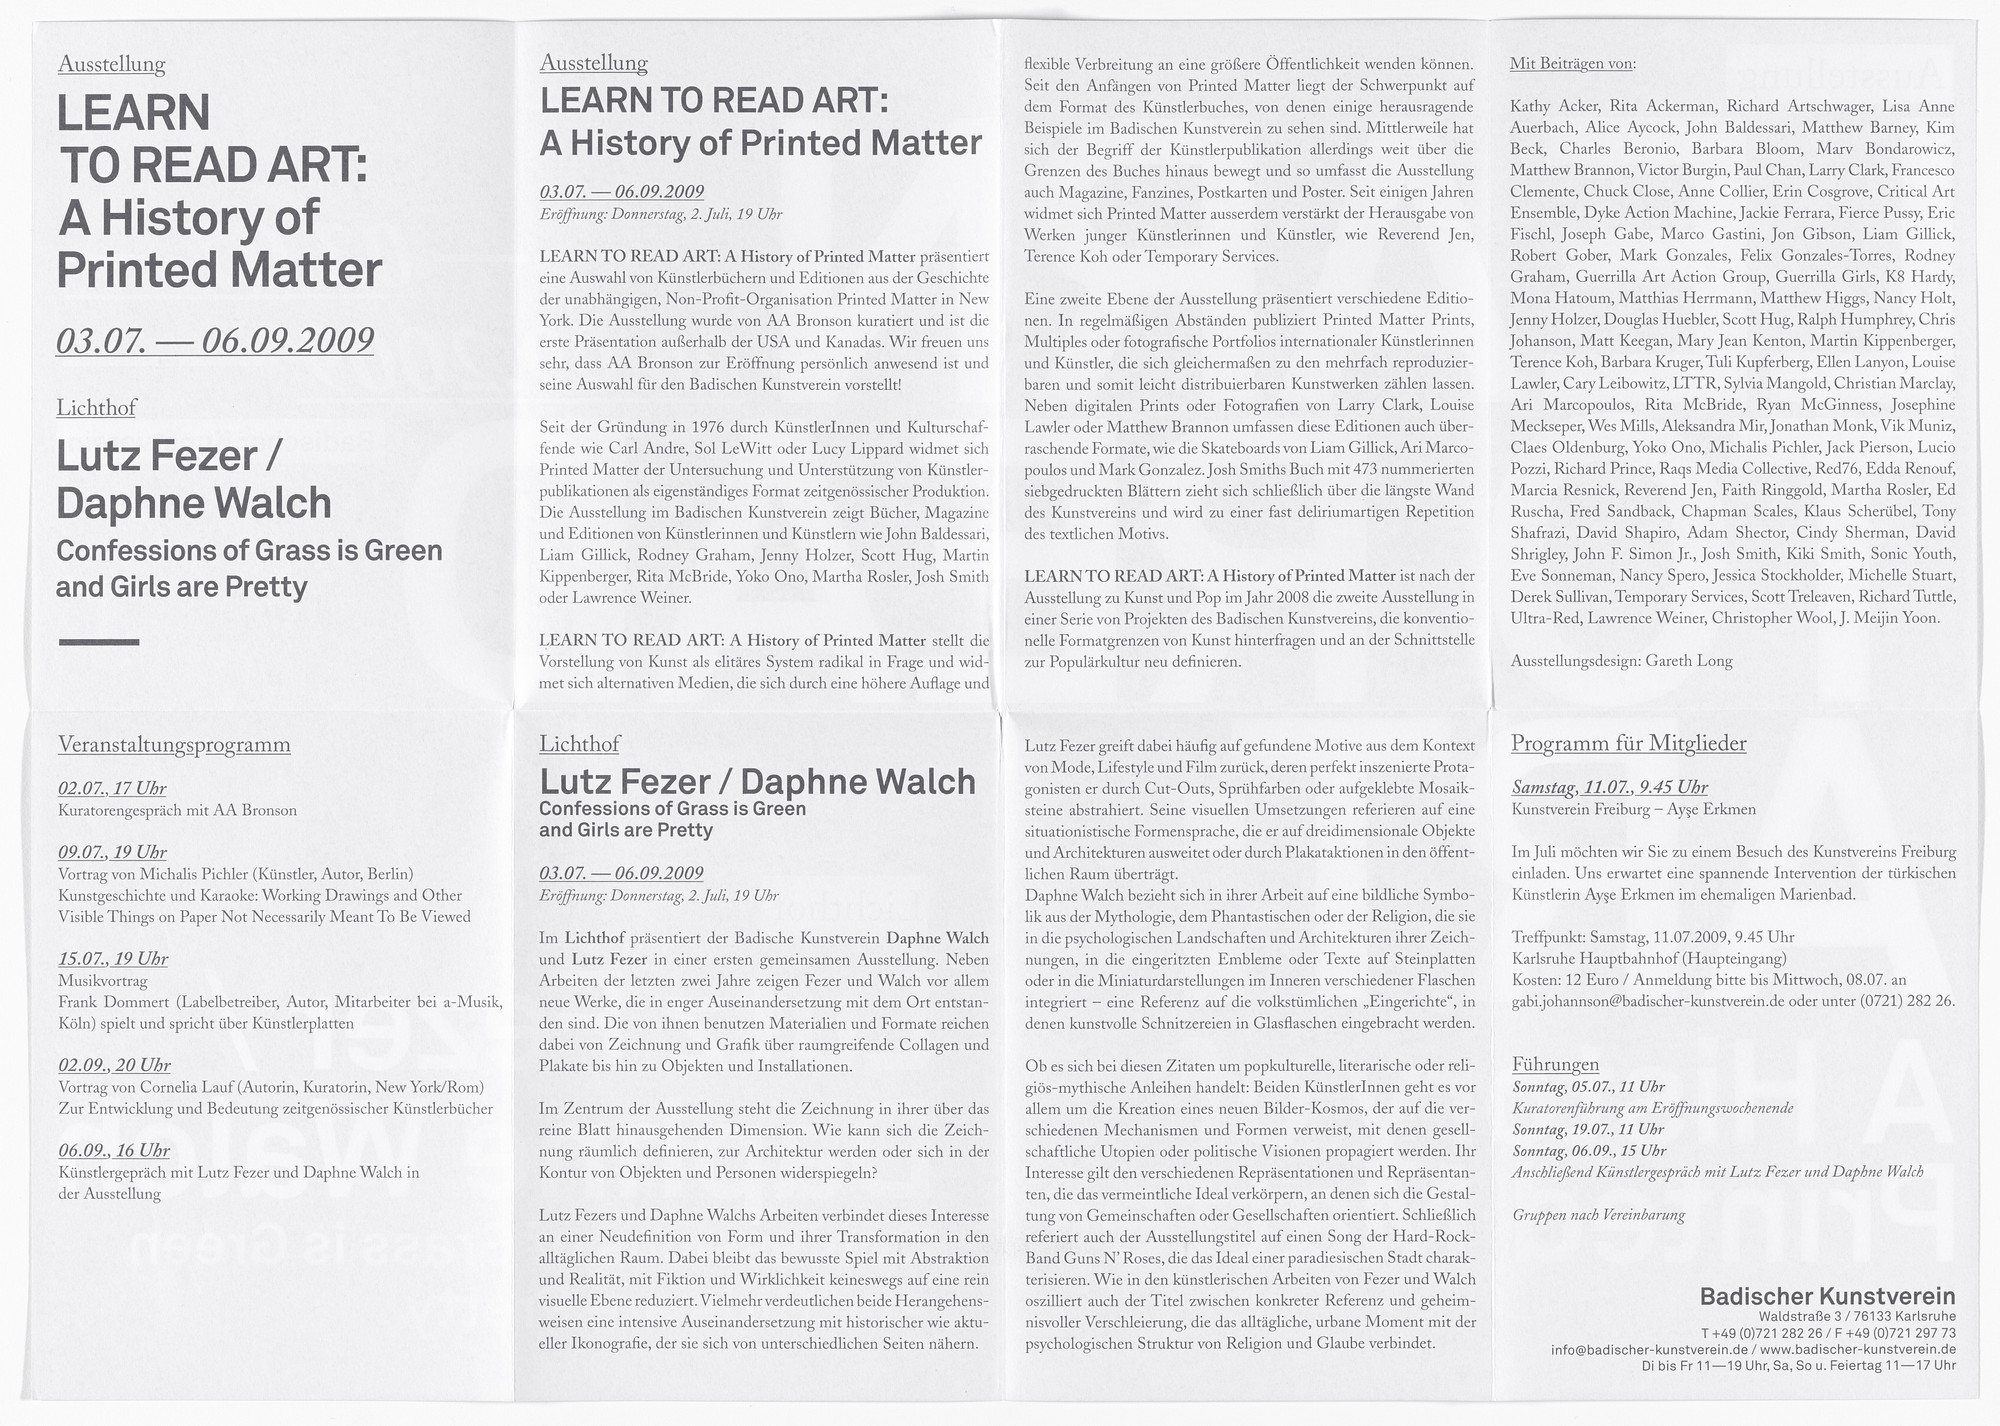 Aleksandra Mir. Poster for Learn to Read Art: A History of Printed Matter, Badischer Kunstverein, Karlsruhe, July 3–September 6, 2009. 2009